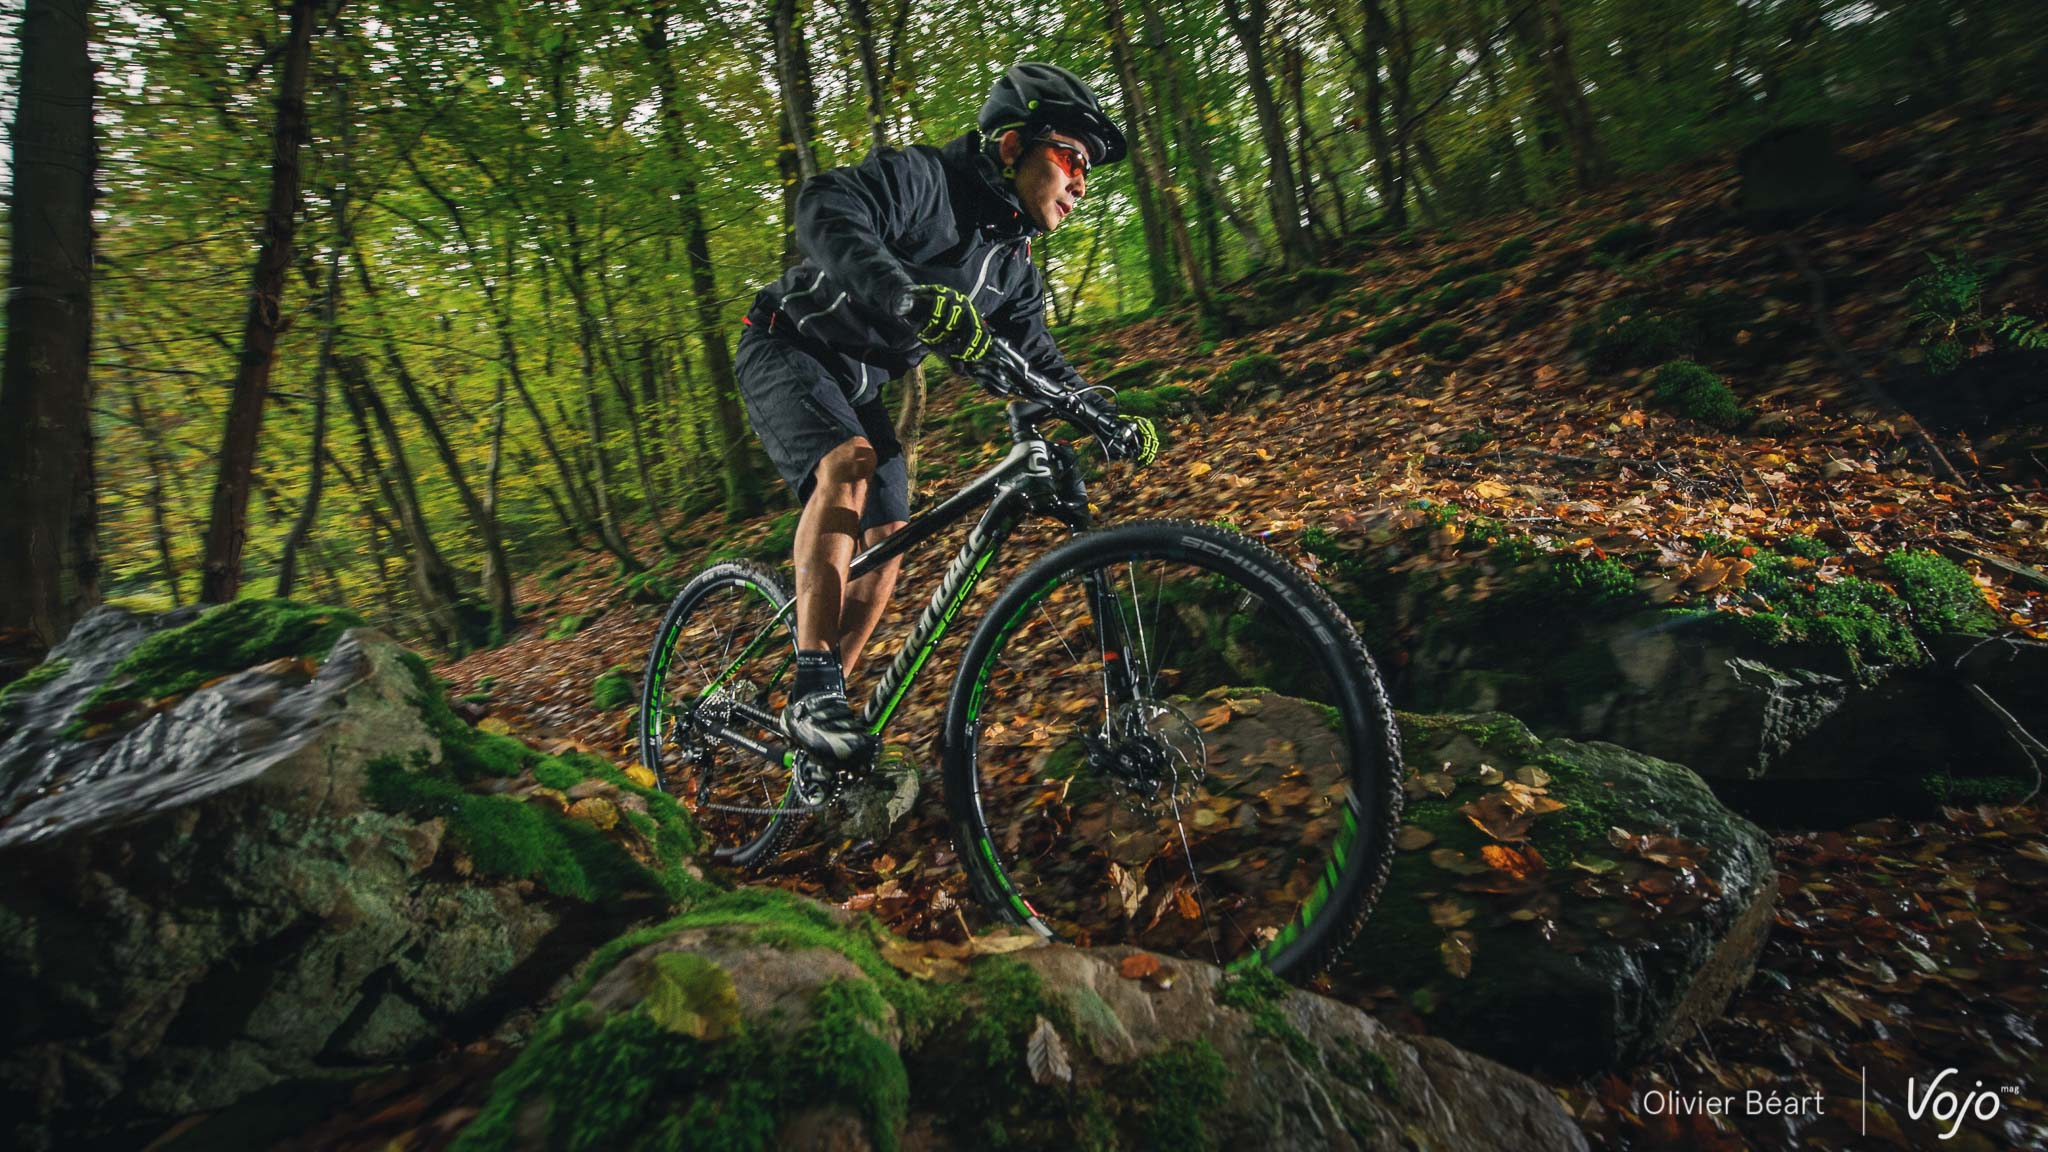 Cannondale_F-Si_Carbon_4_Test_Action_Copyright_OBeart_VojoMag-2b